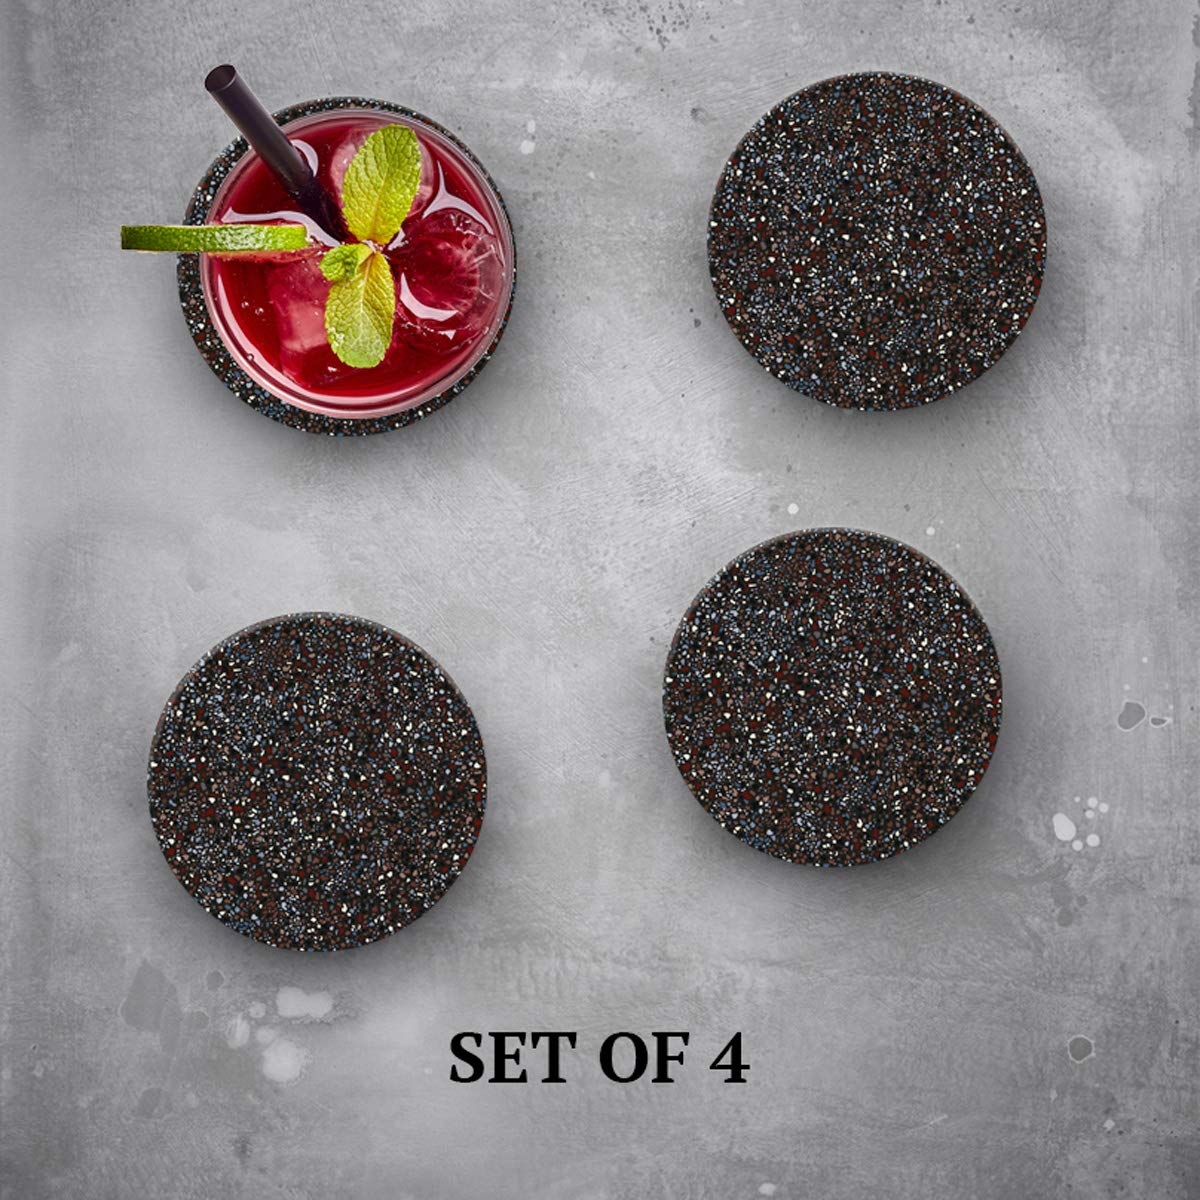 Terrazzo Dark - Absorbent Stone Coasters for Drinks 4 inch Set of 4 - Large Modern Round Natural Ceramic Water Absorb Spill Coaster with Non-slip Cork Backing for Mugs and Cups by Lecoster (Image #3)